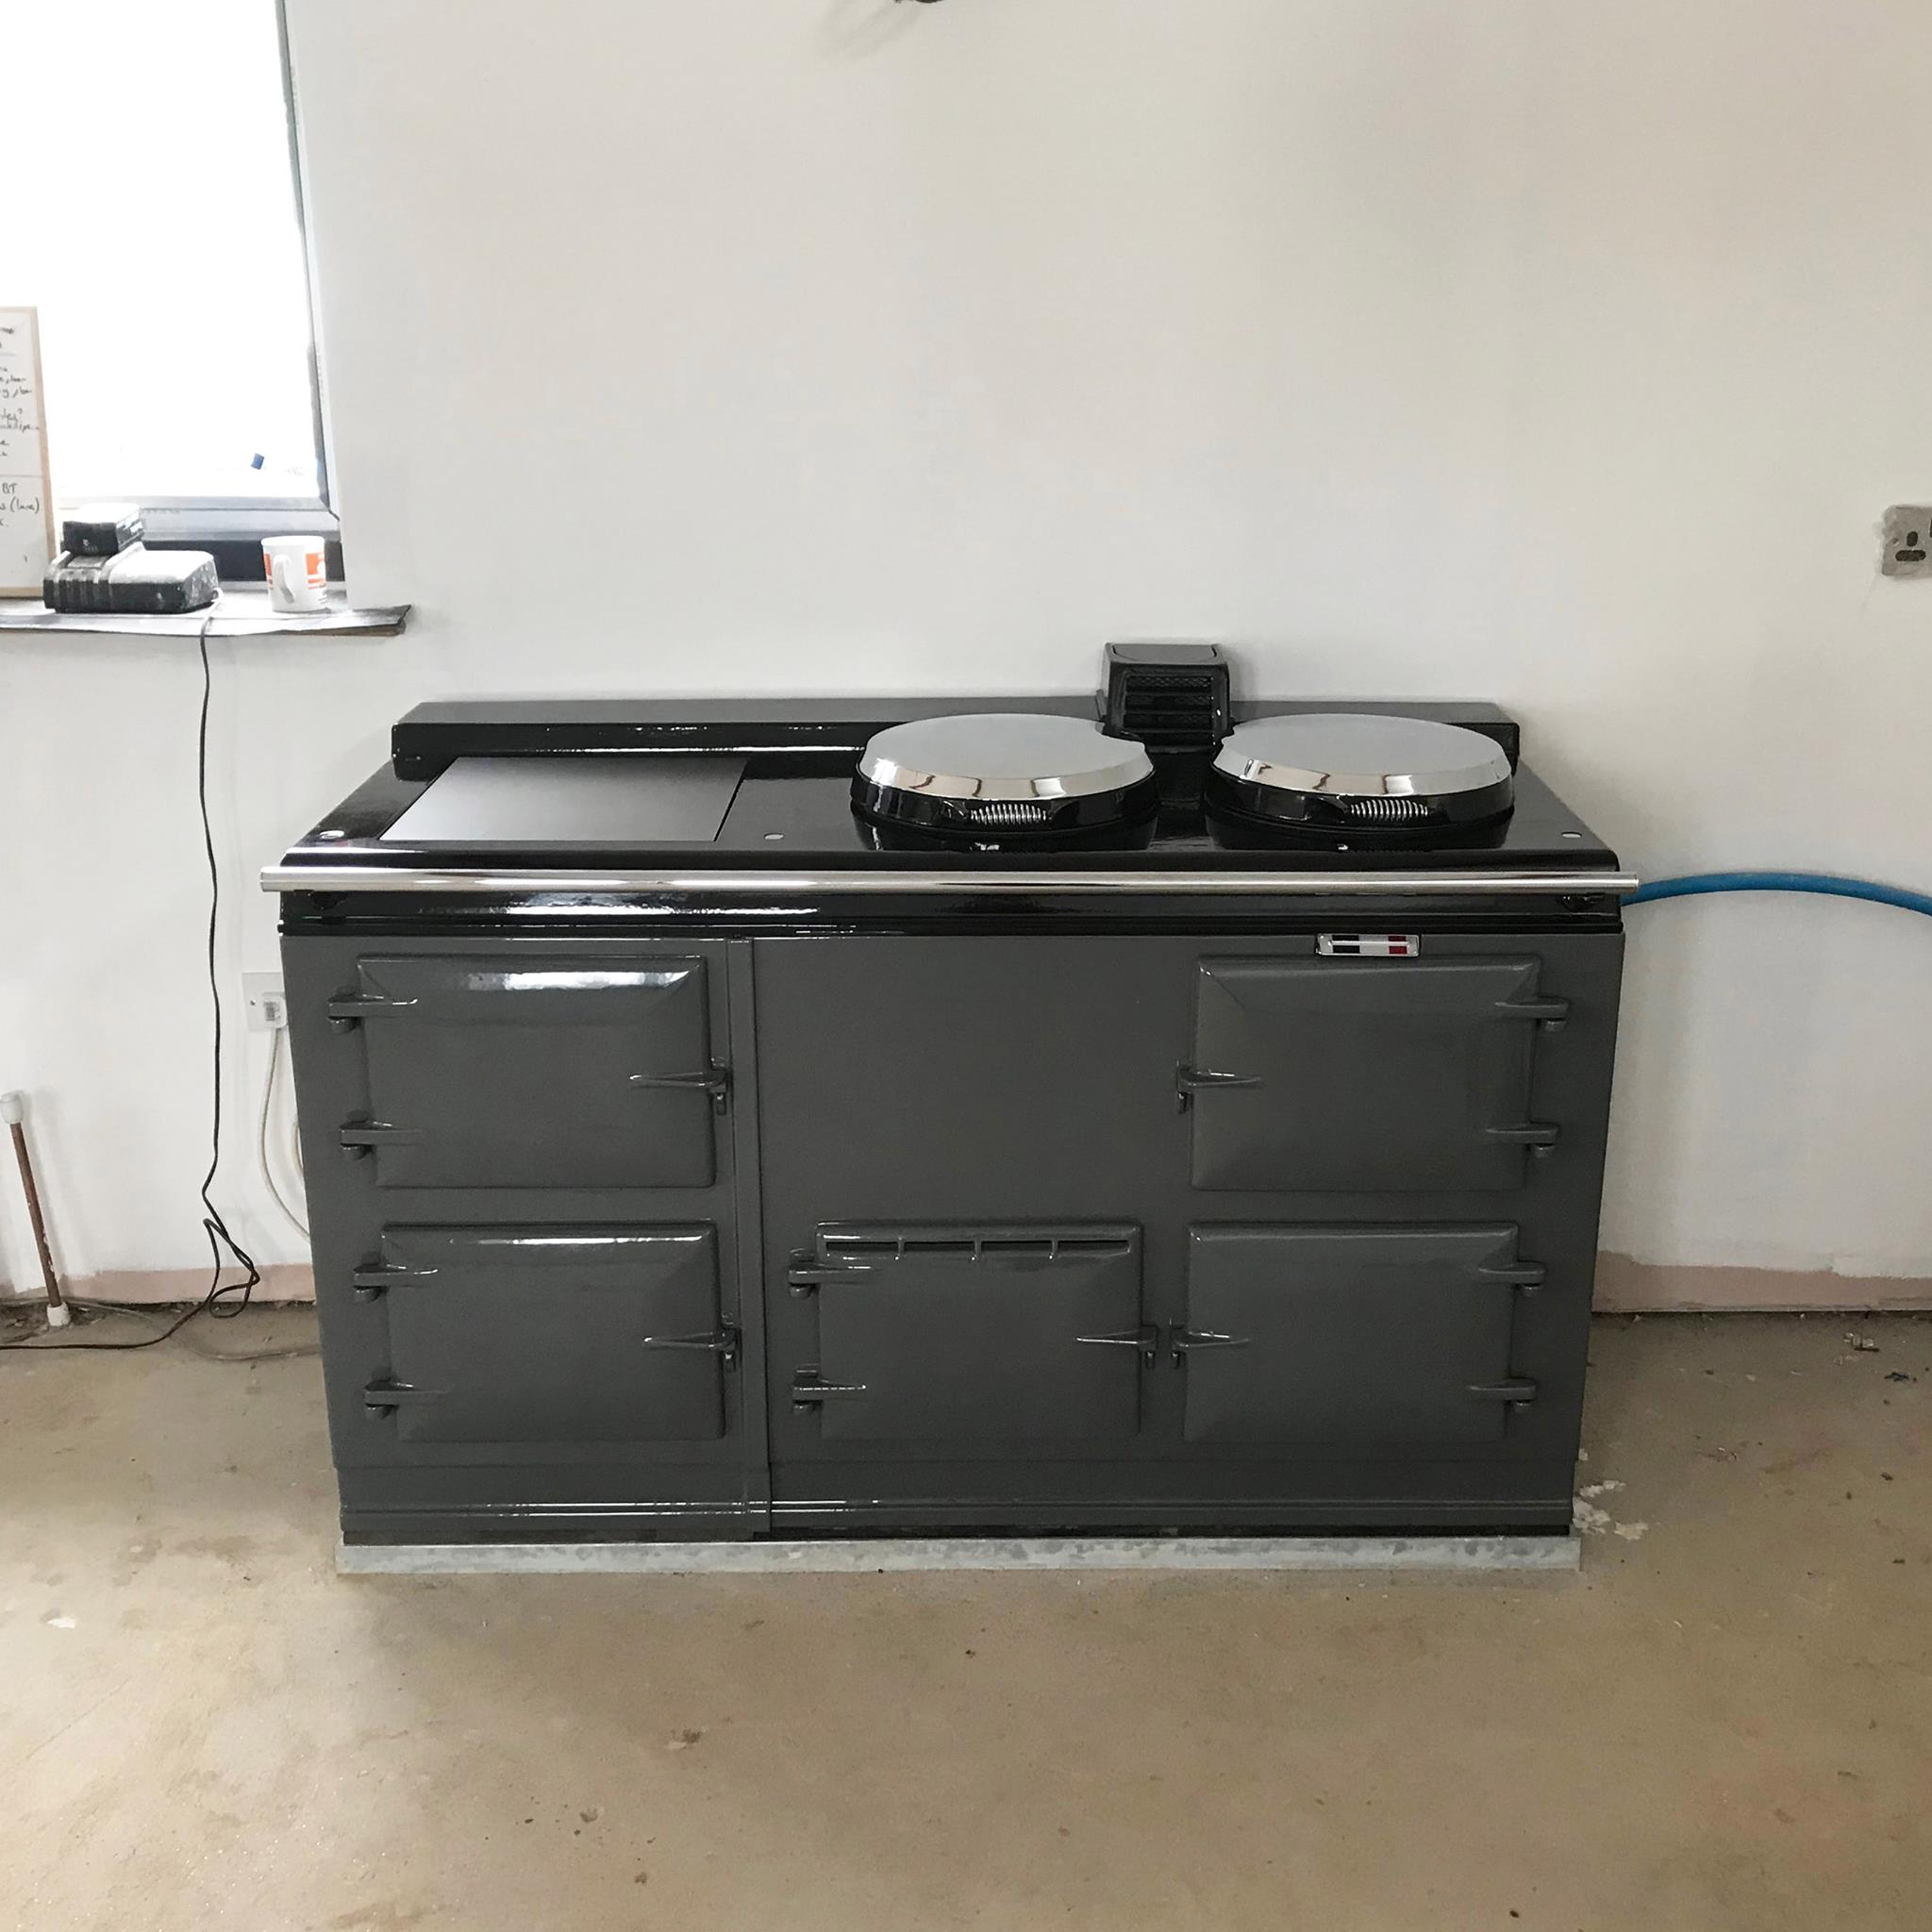 A clean and tidy work site around grey Aga range cooker